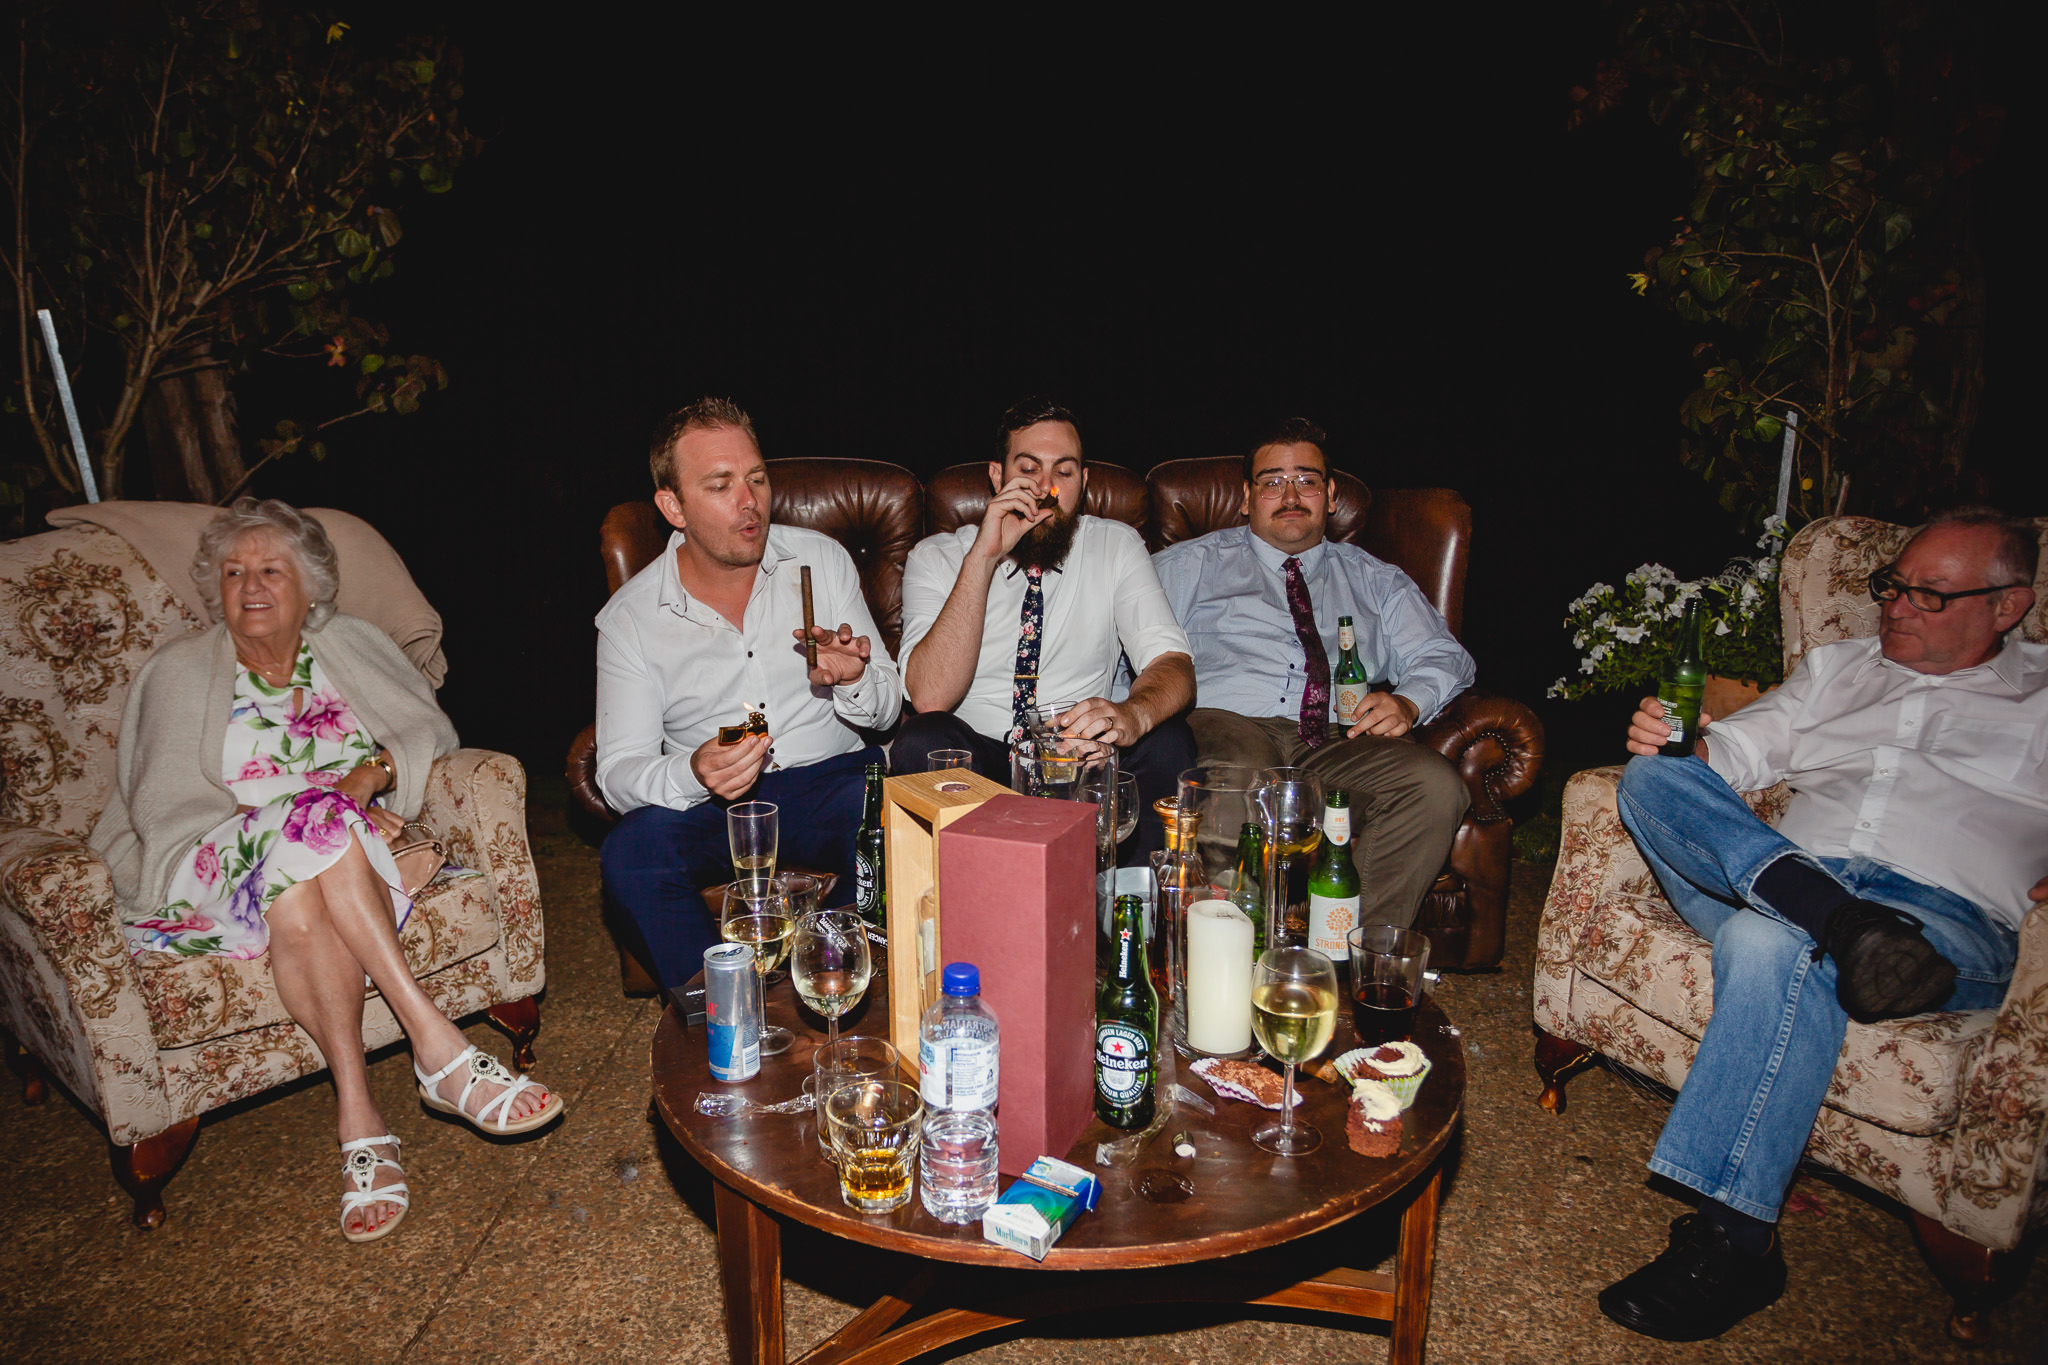 Groom and friends smoking cigars while sitting on leather couch in front of coffee table filled with drinks at Stonebarn Lodge in Pemberton at wedding reception